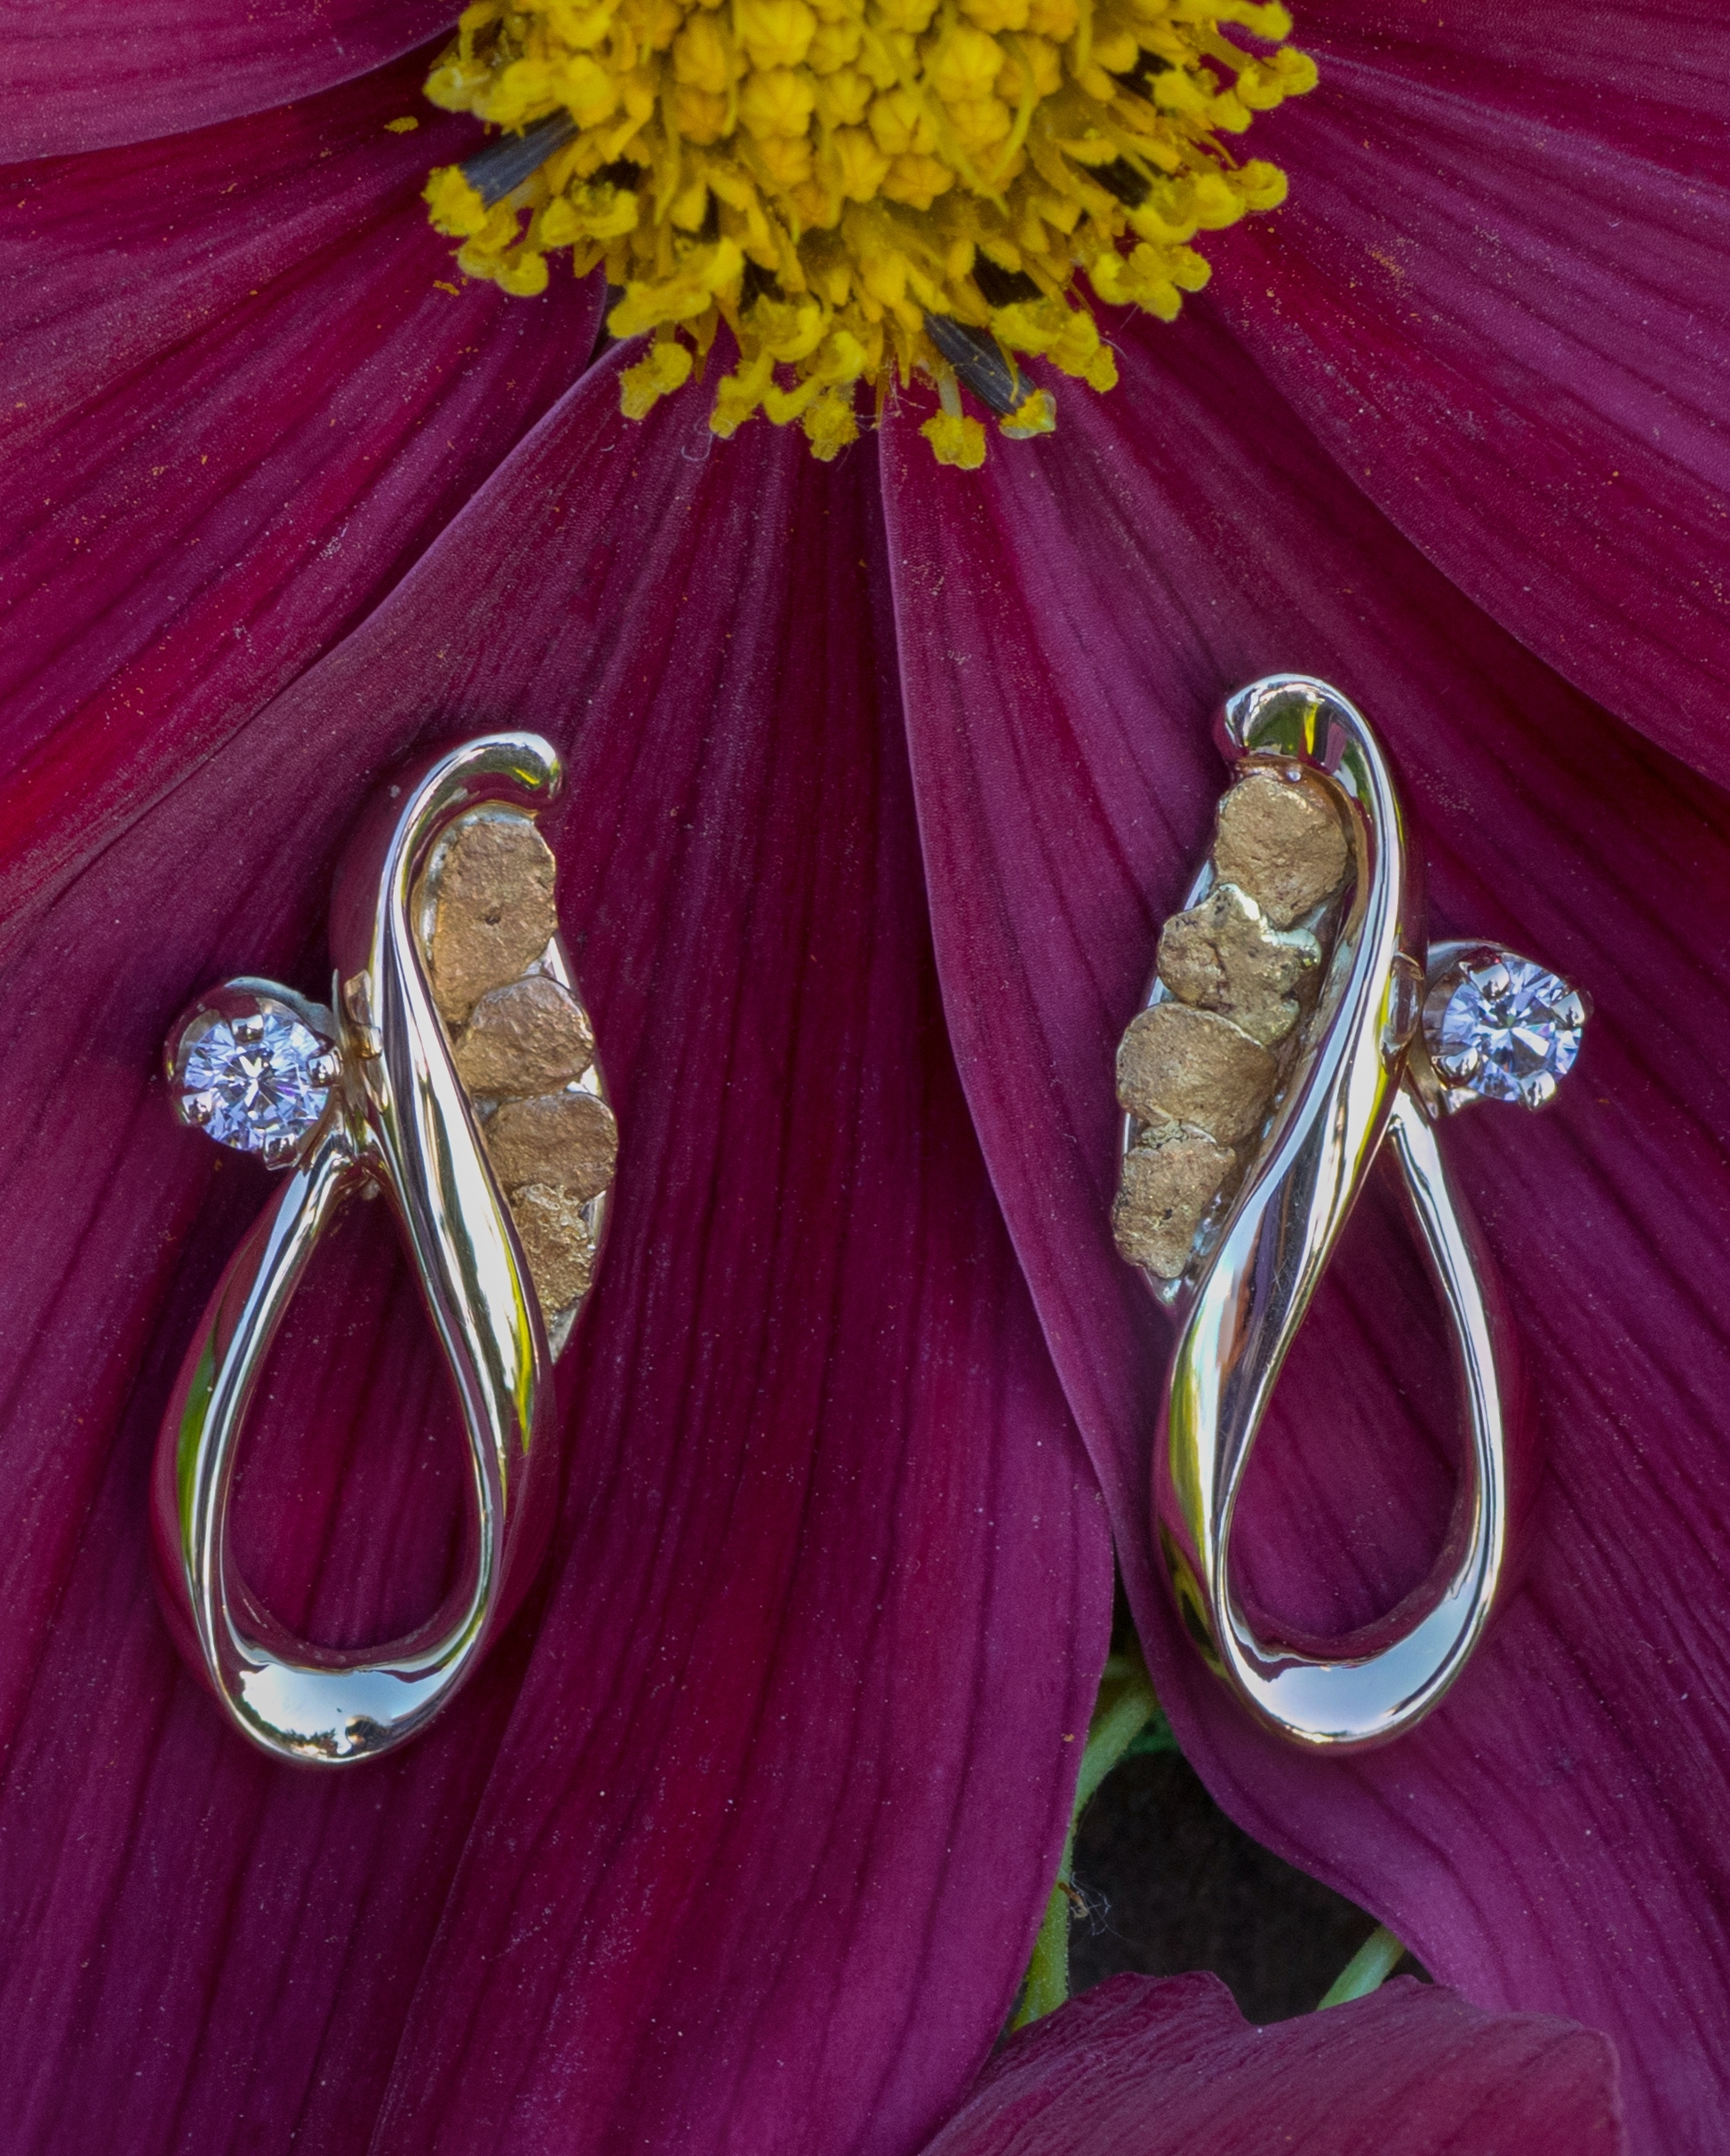 Gold Nugget earrings with diamonds in 14kt yellow gold.